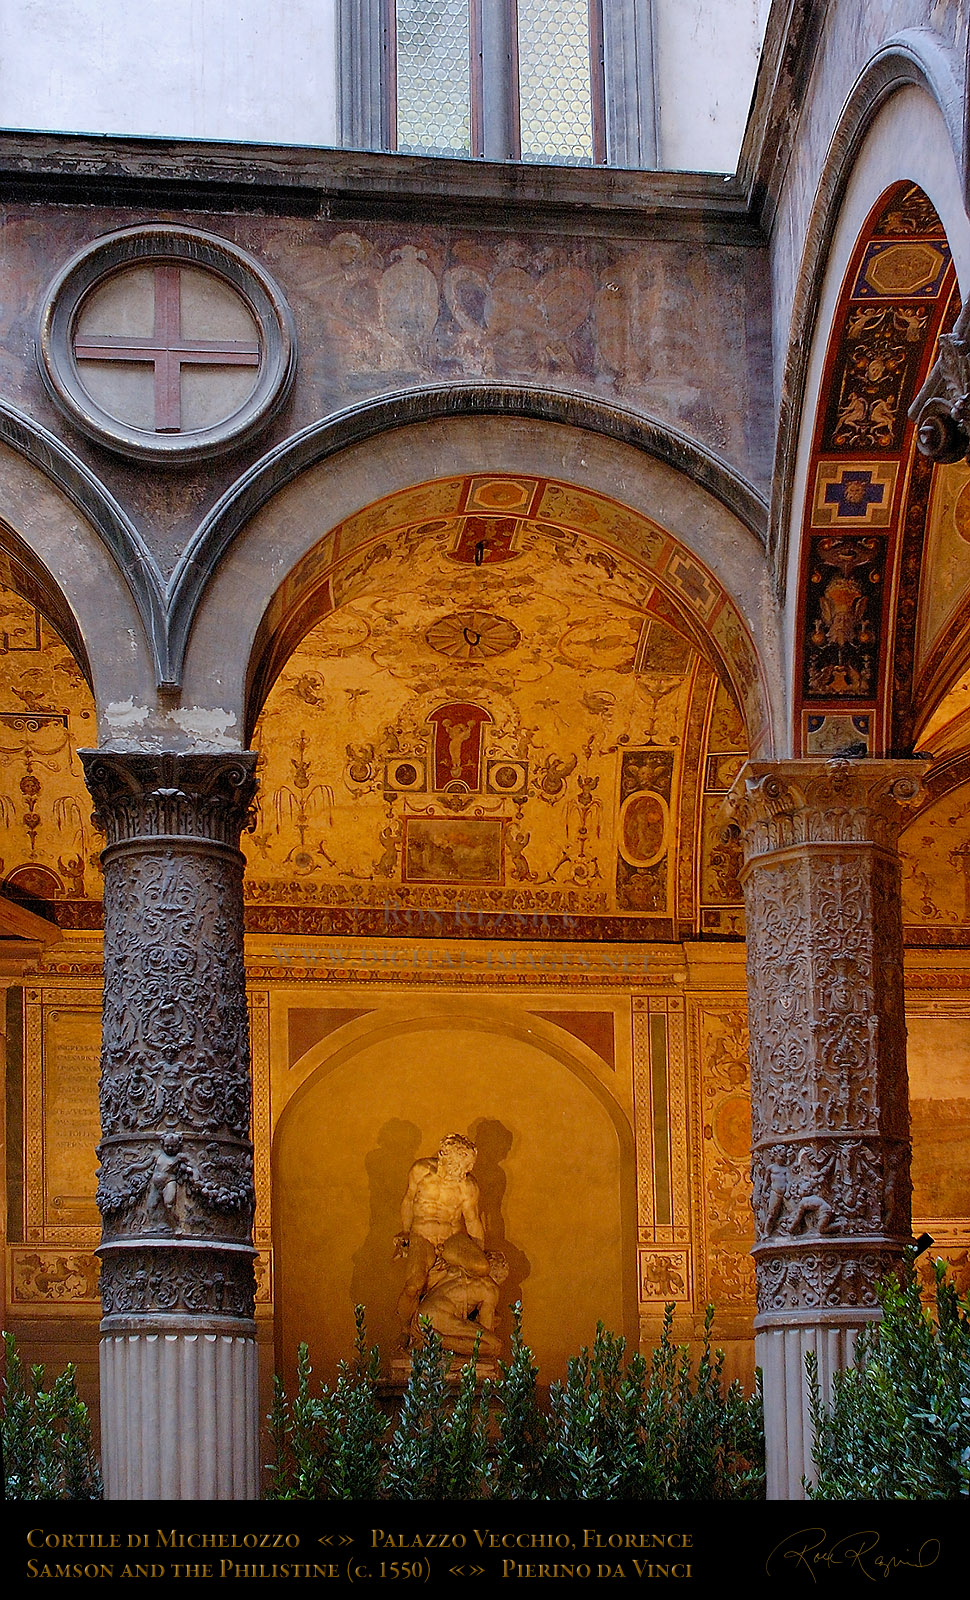 Architecture And Art Of The Palazzo Vecchio Old Palace